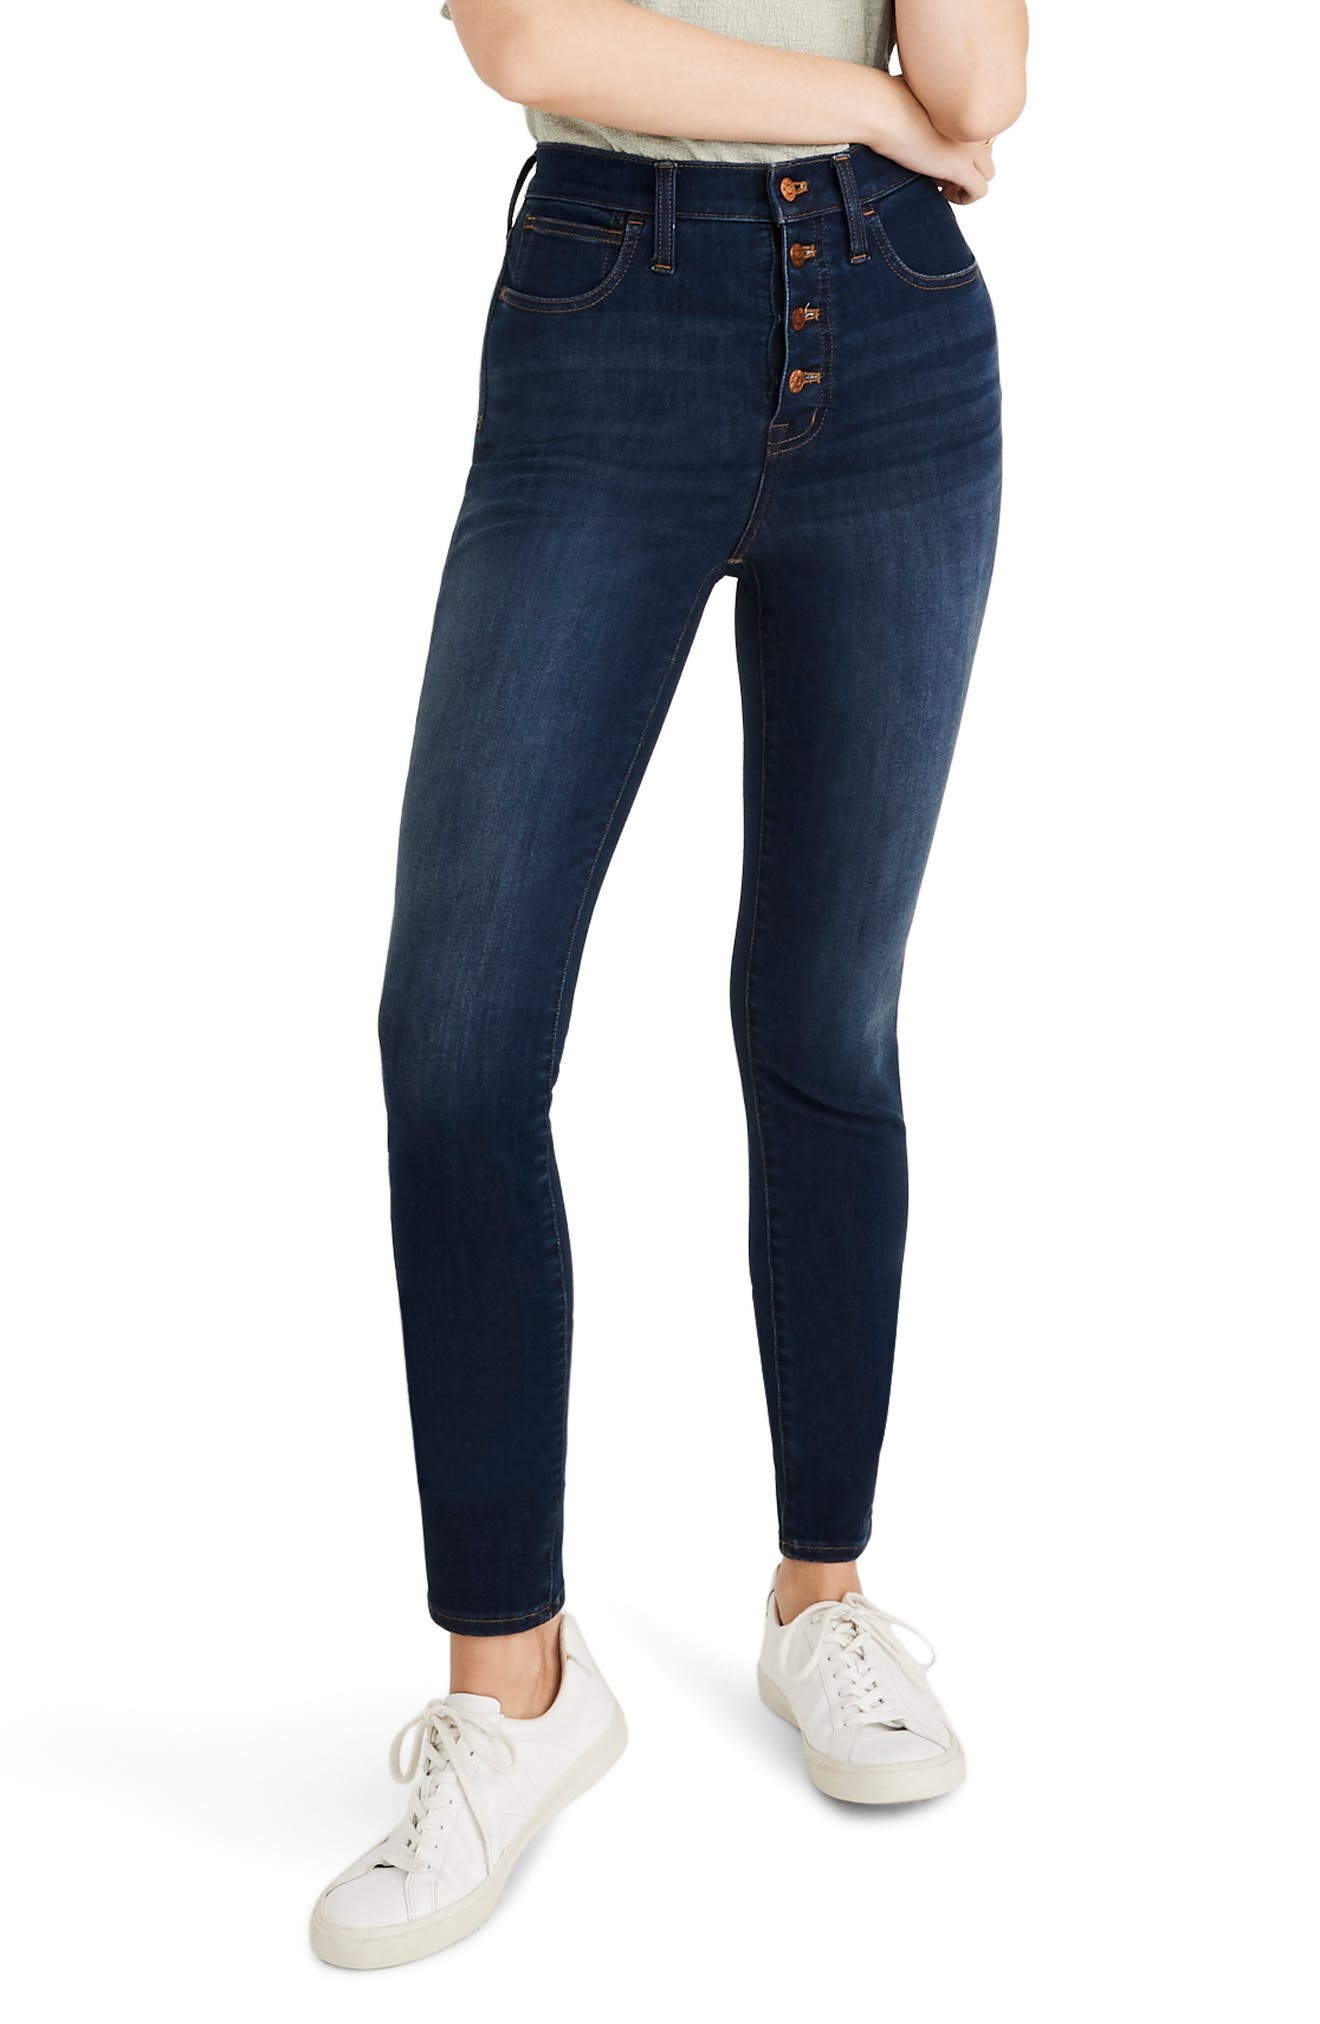 Madewell 10-Inch High Waist Skinny Jeans: Button Front Edition (Cassia) (Regular & Plus Size)